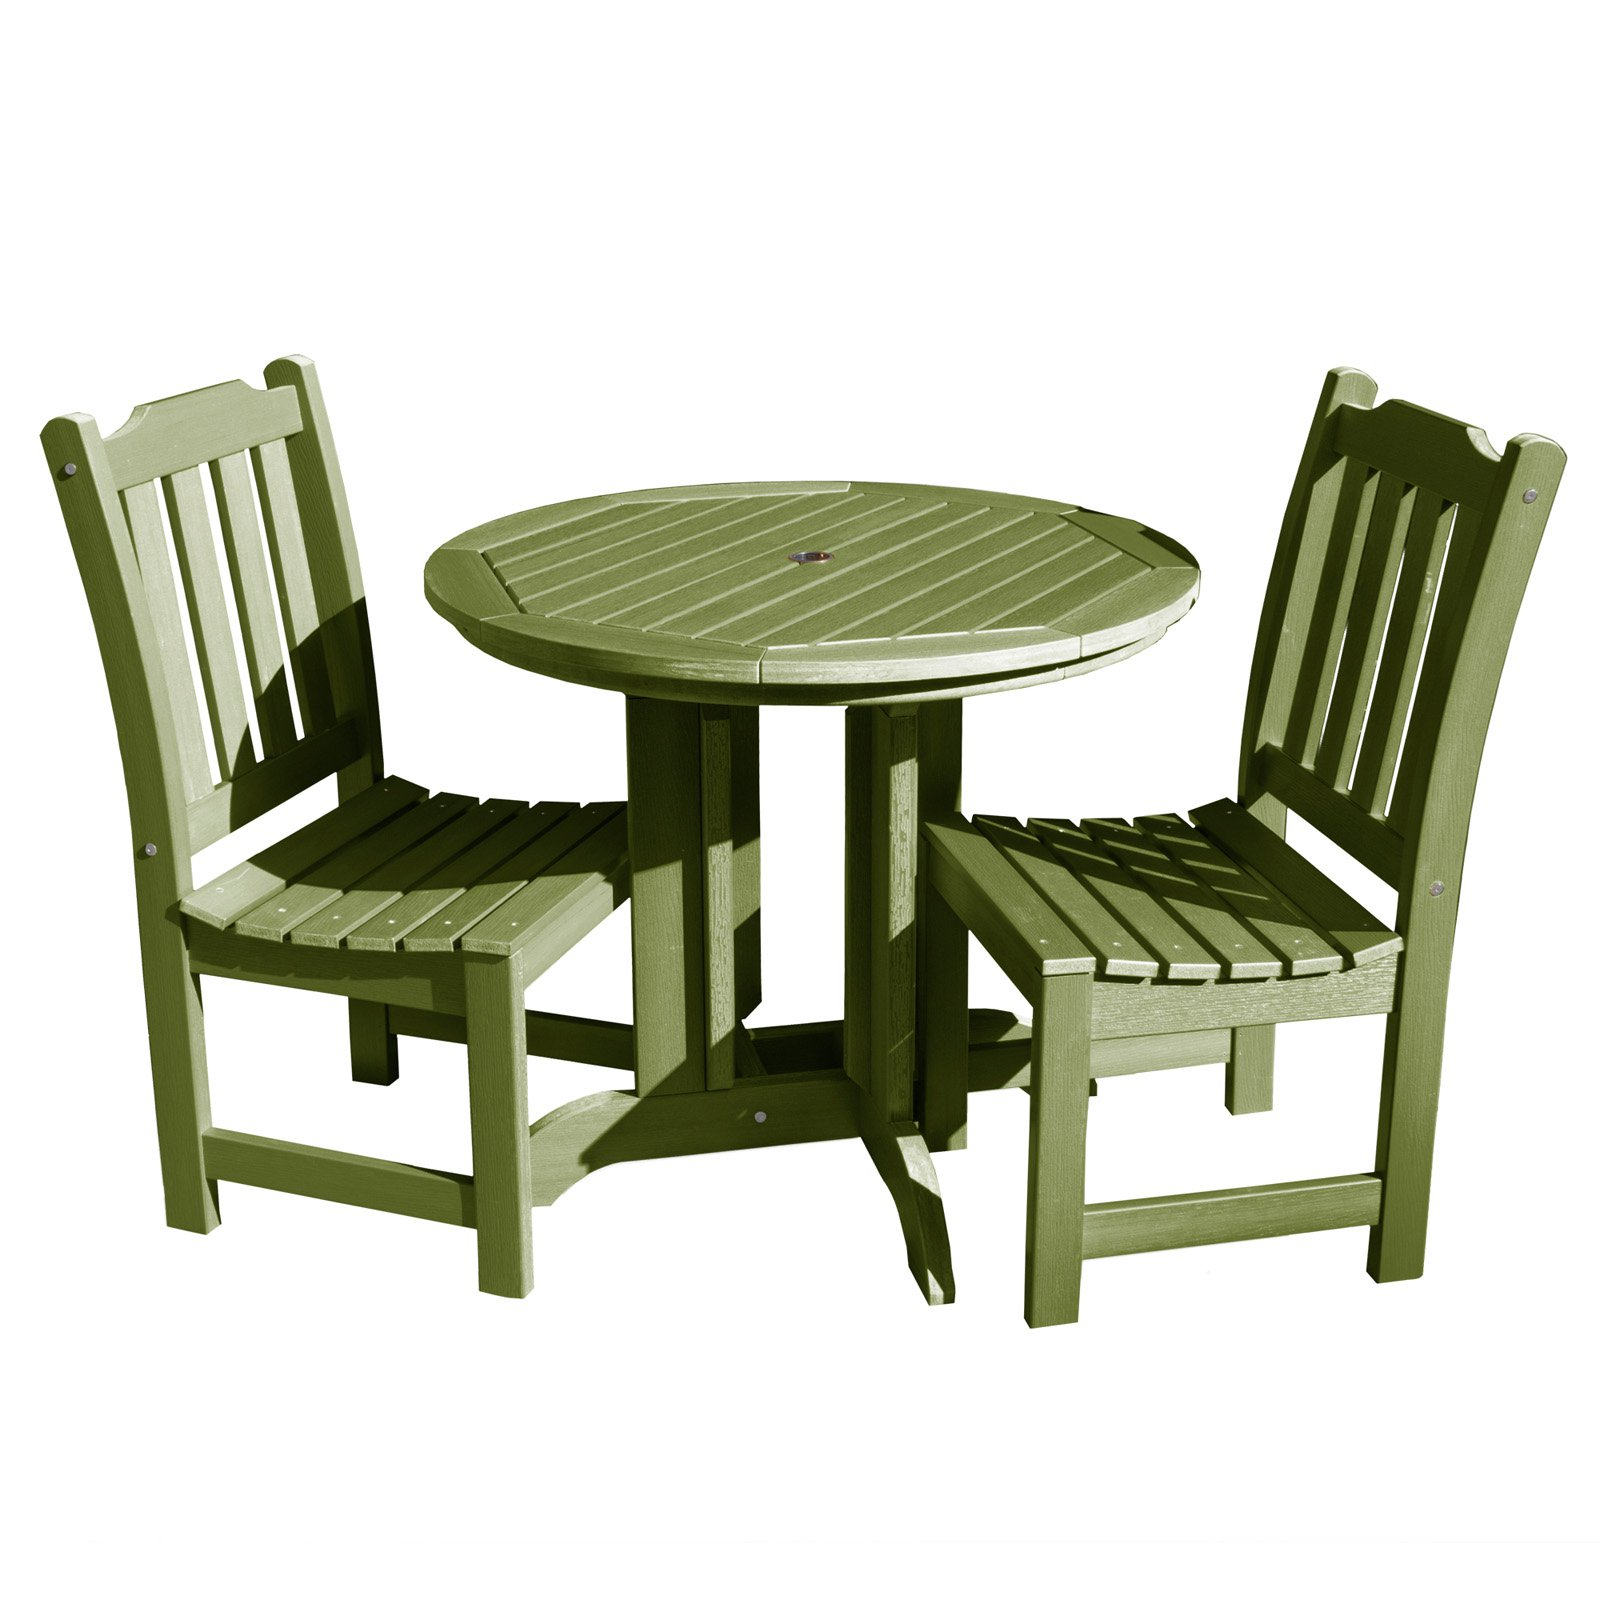 Saintcroix 3 Piece Dining Sets Intended For Most Up To Date Outdoor Highwood Lehigh Recycled Plastic 3 Piece Round Patio Bistro (#16 of 20)